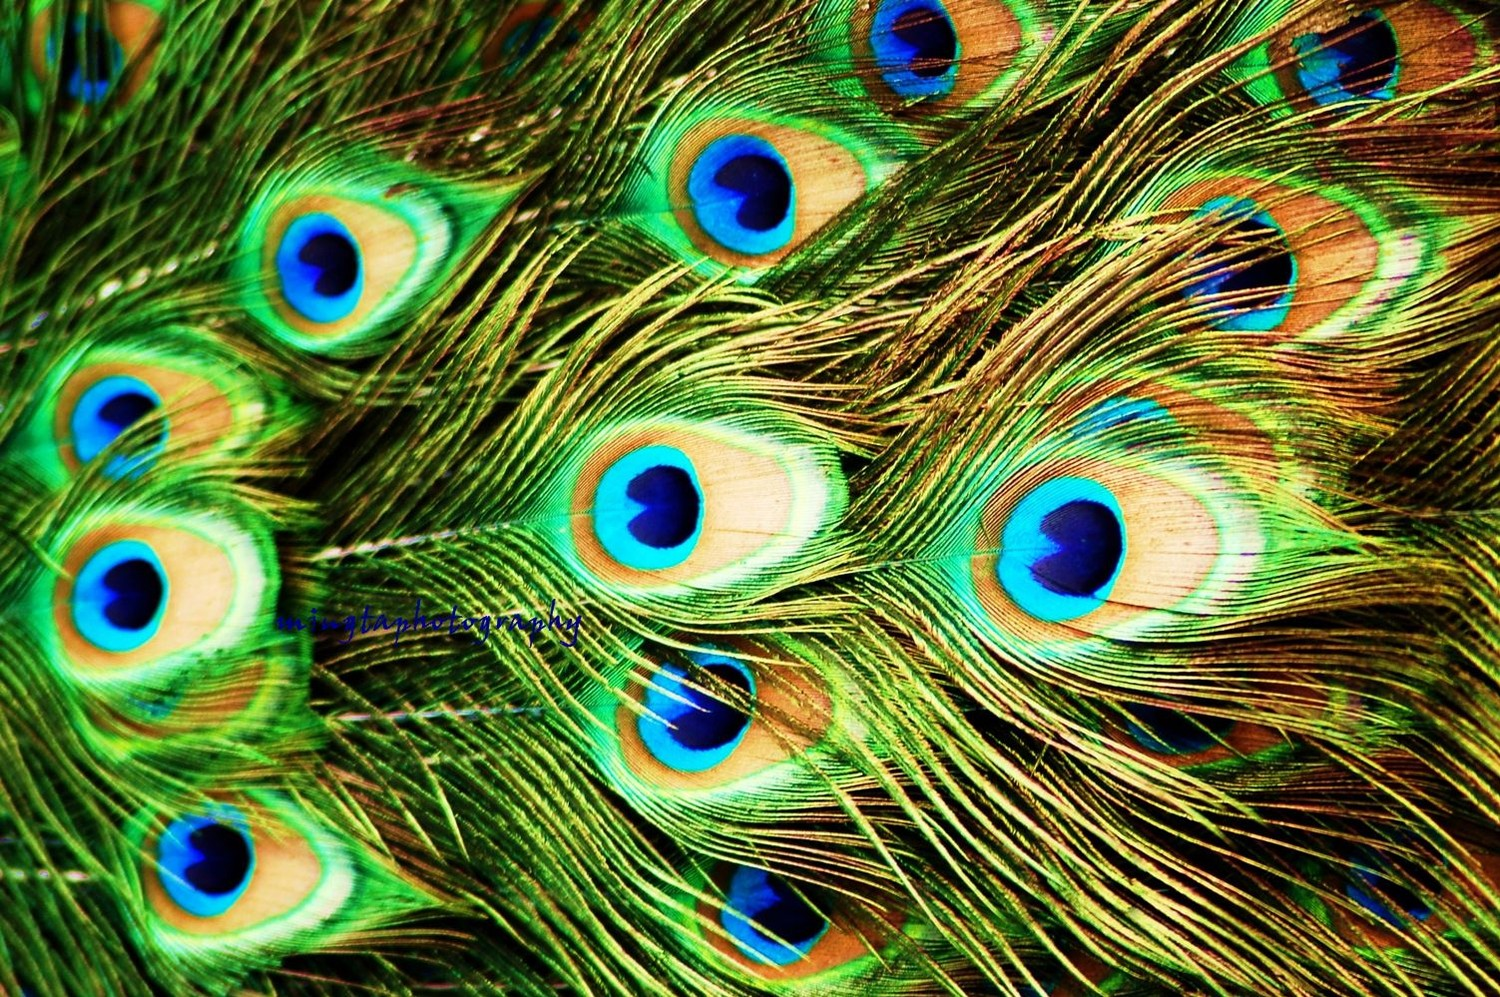 HD Peacock Feather Wallpaper 1500x997